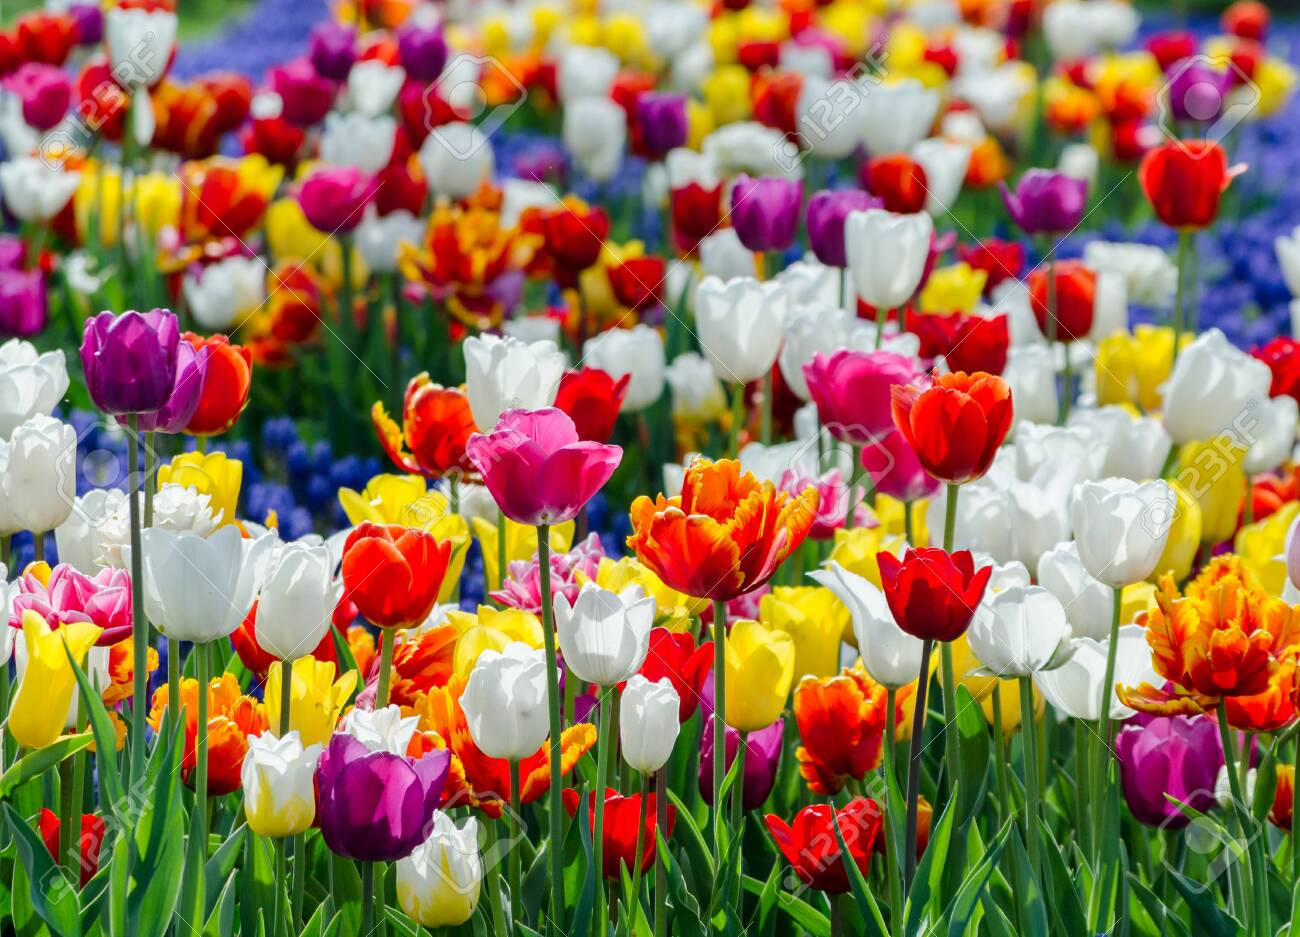 Large Blooming Flower Bed With Multicolored Hybrid Tulips Stock